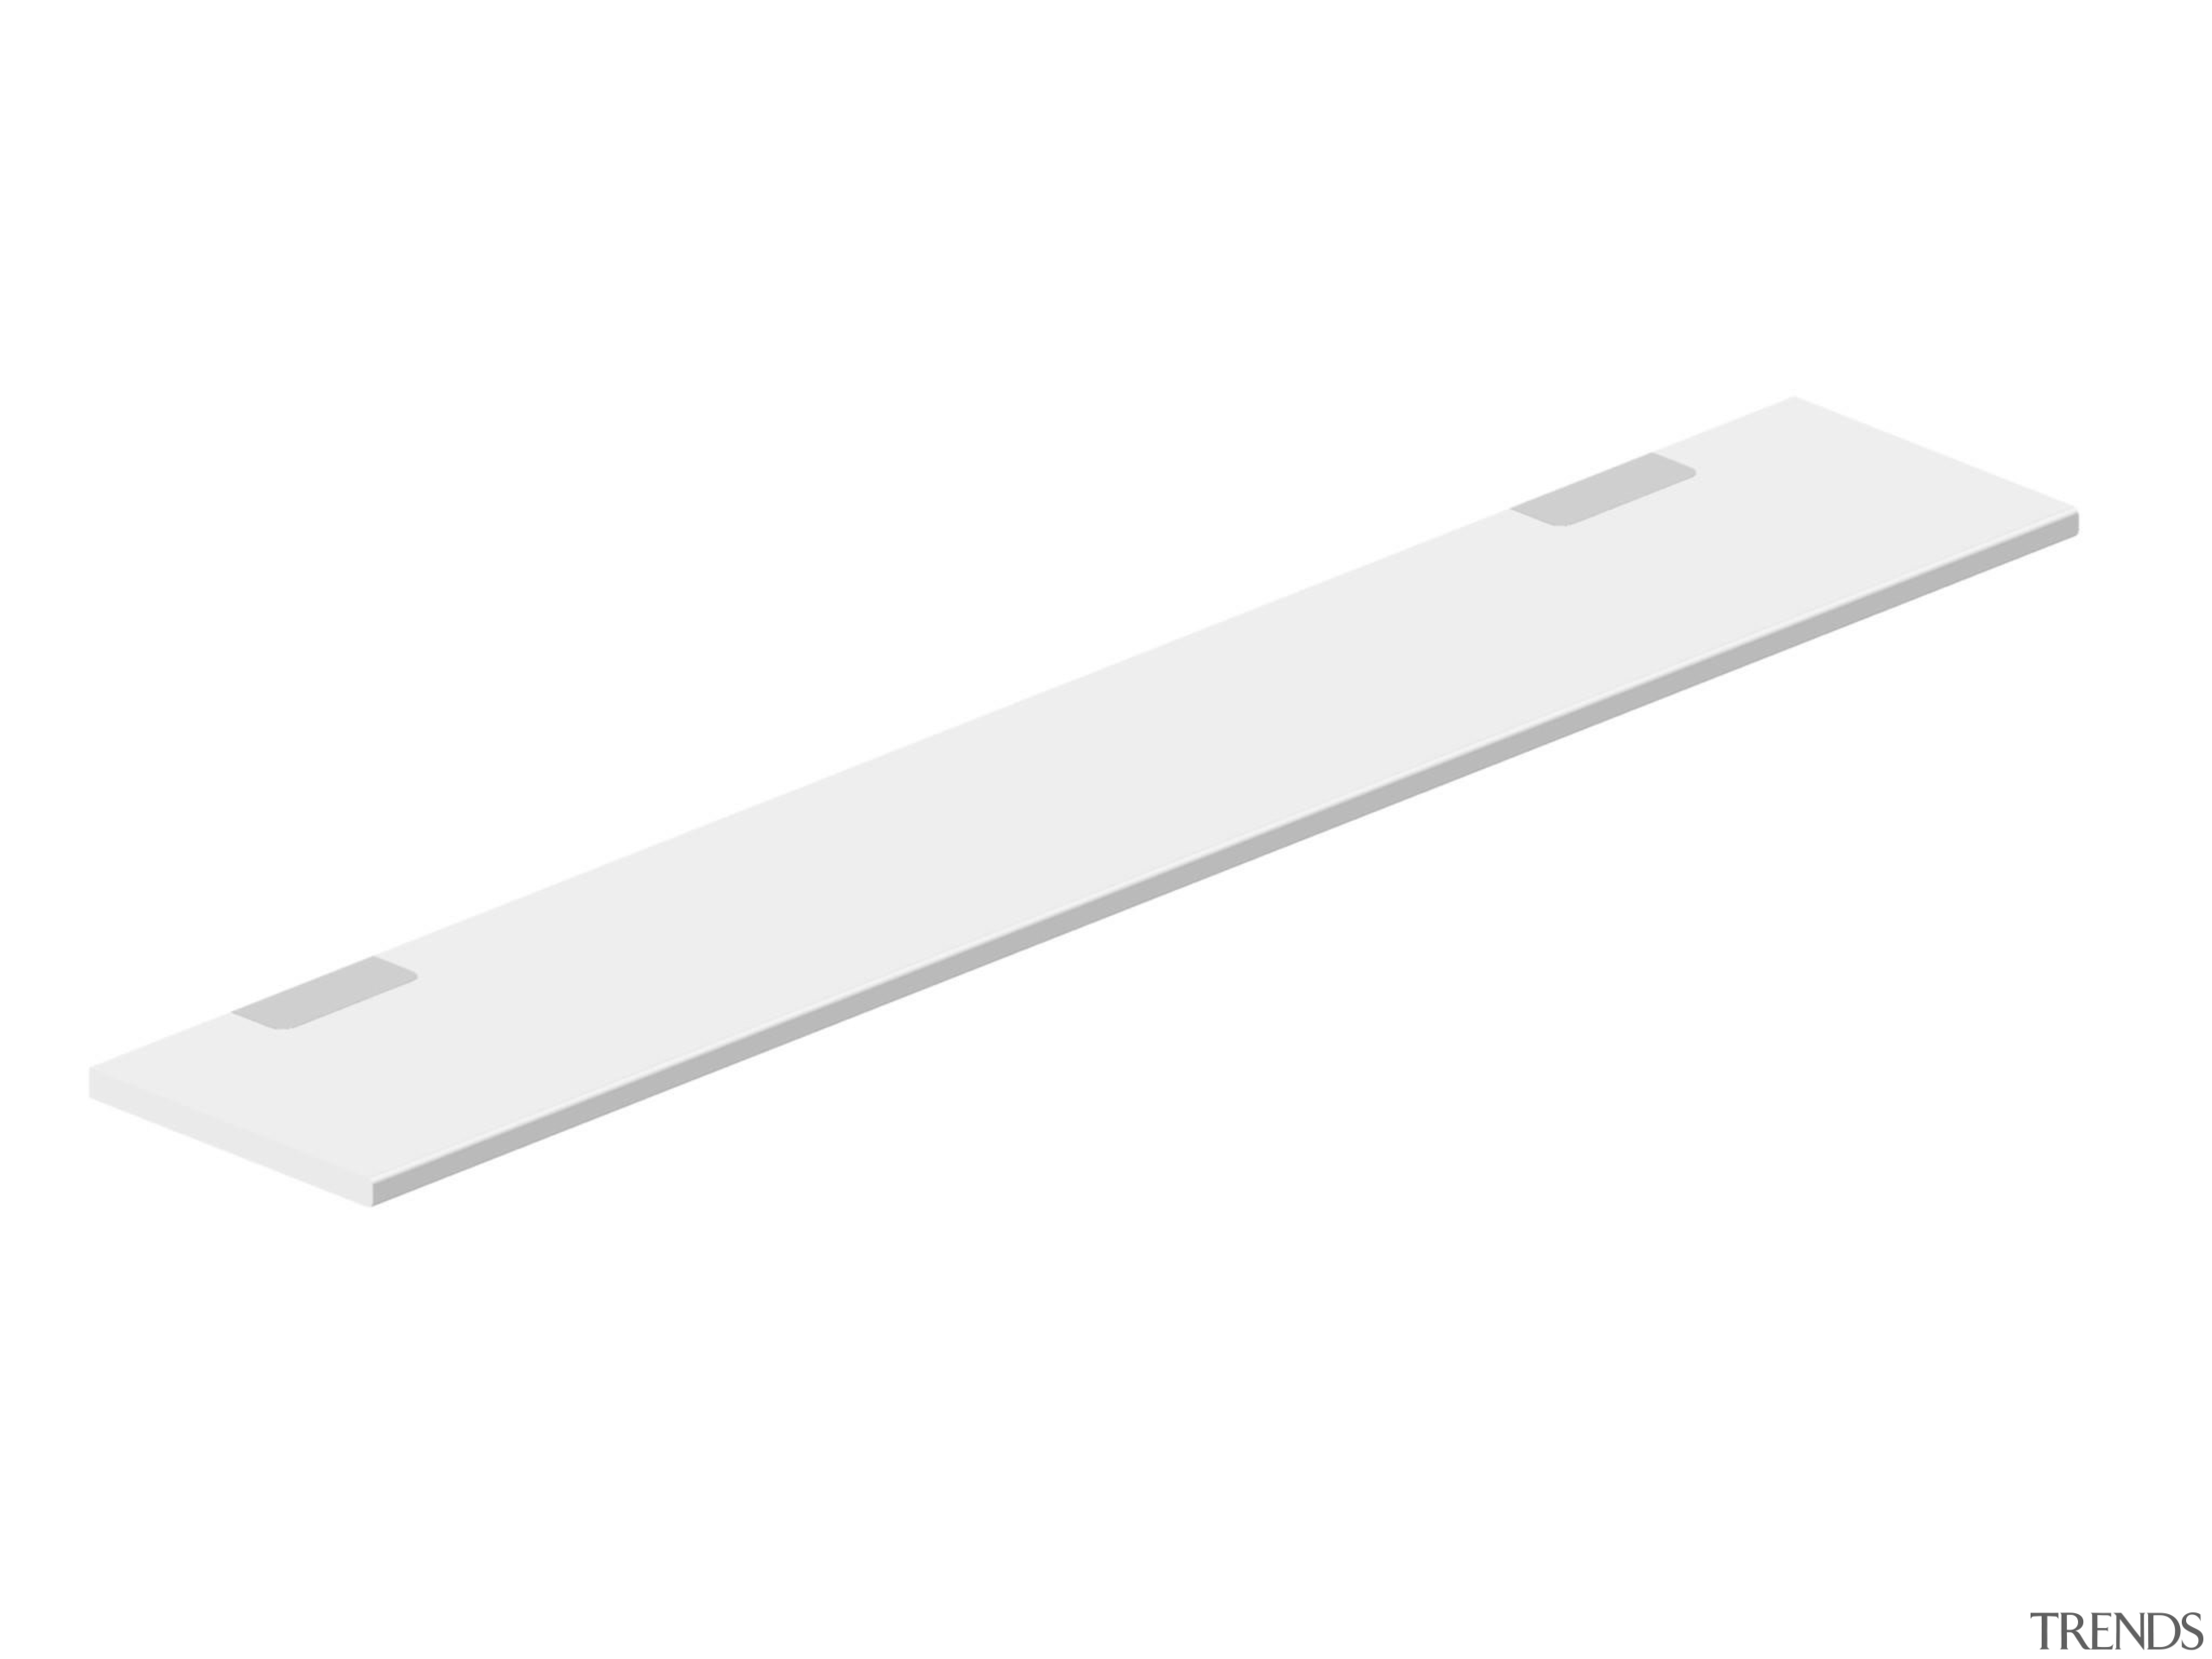 • Manufactured in Australia• Warranty 10 Years• Double angle, product design, white